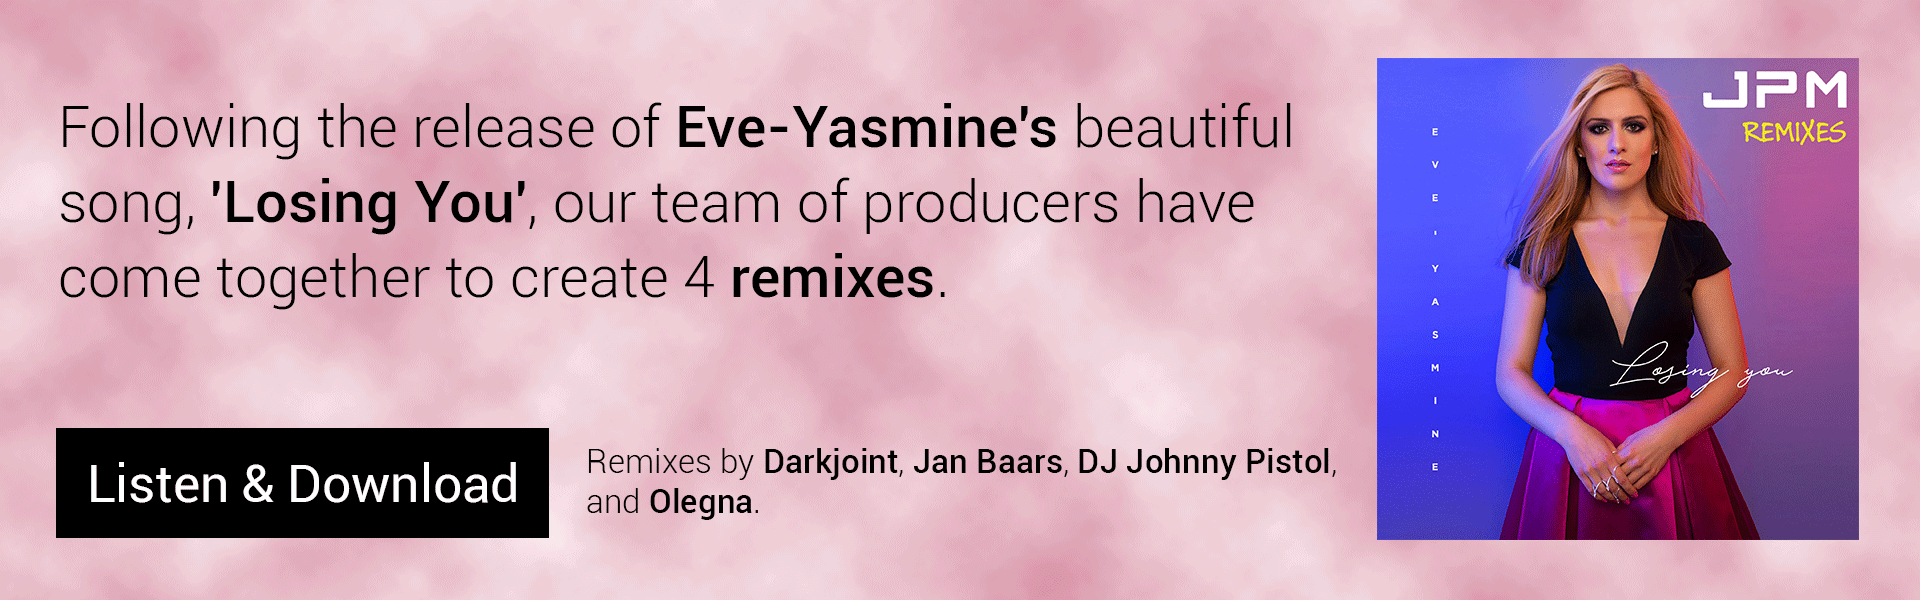 Banner for Eve-Yasmine remixes